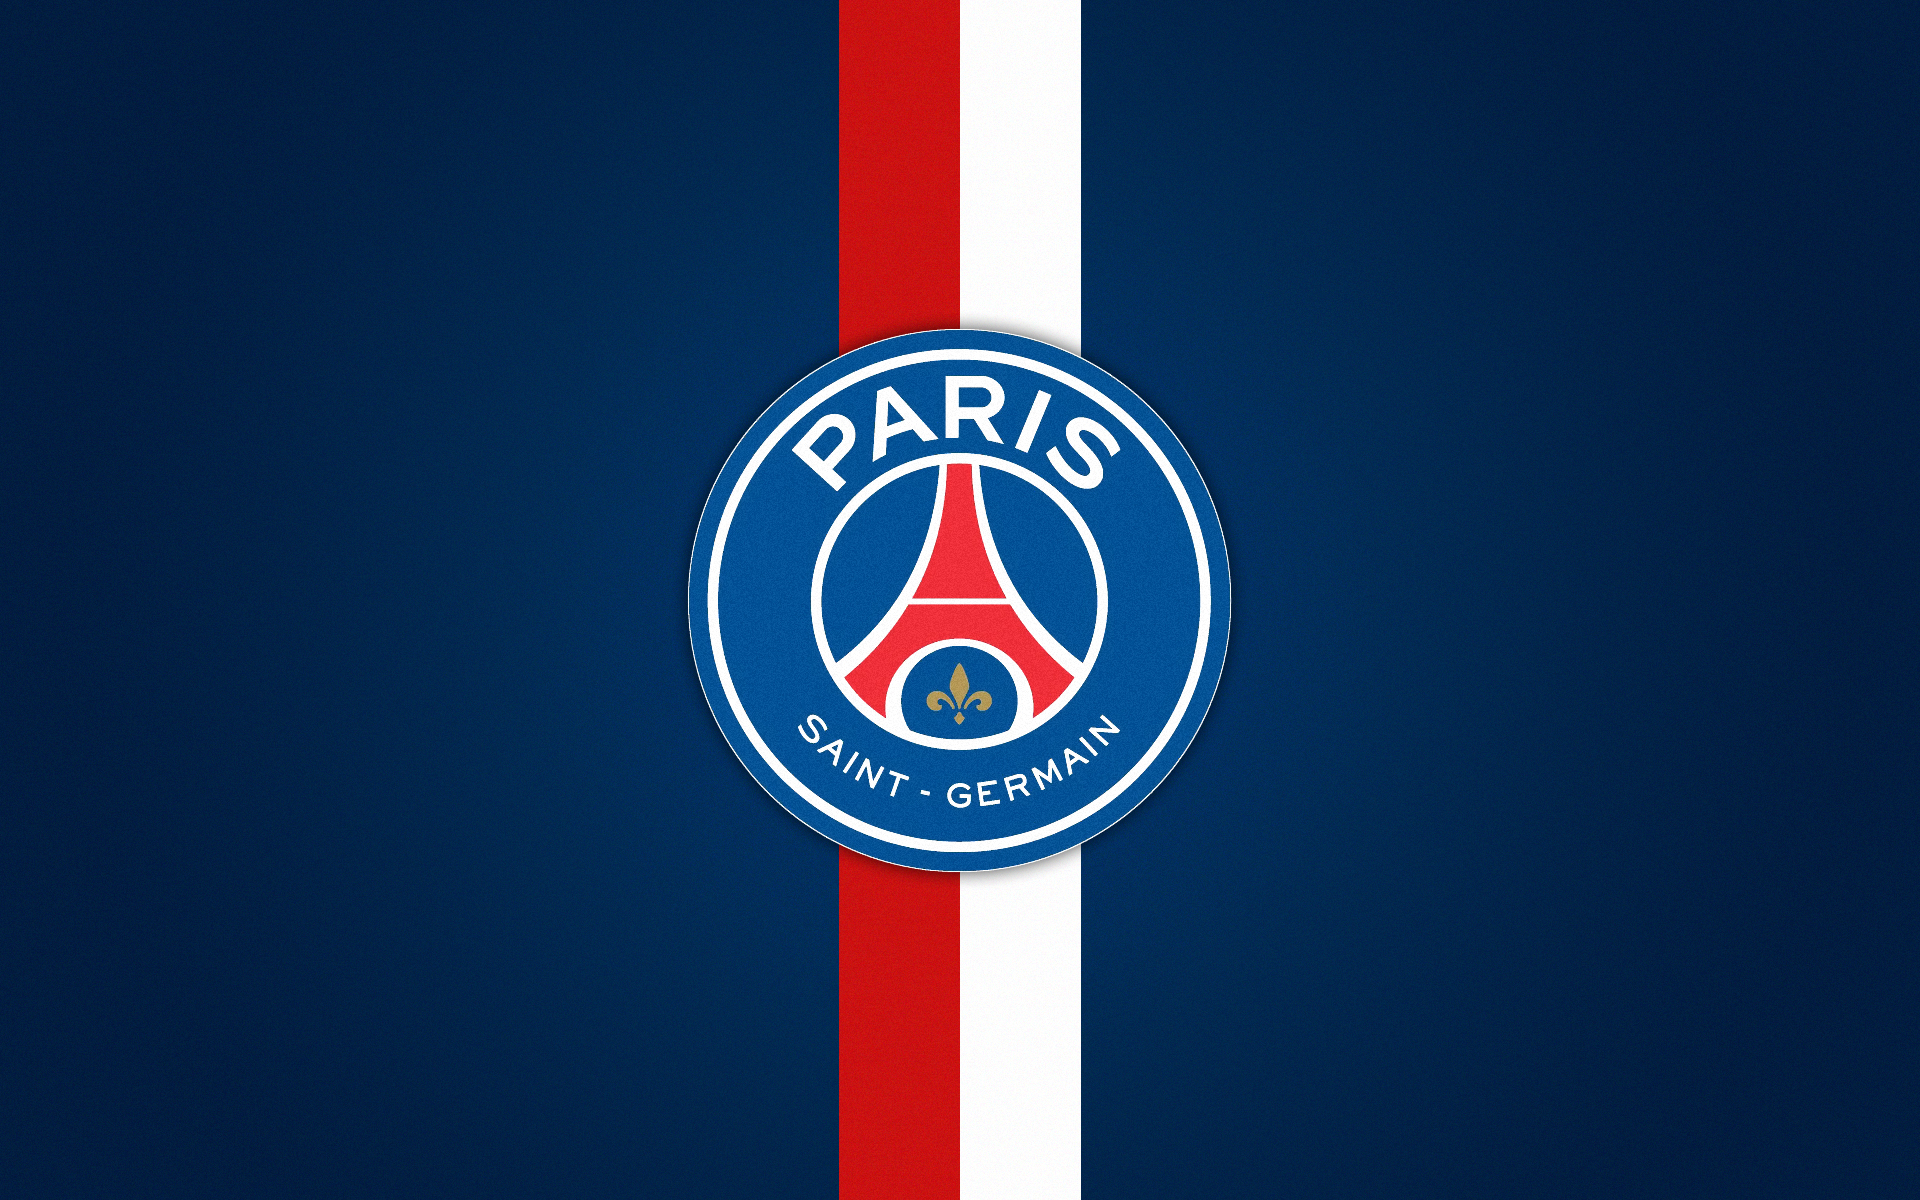 1920x1200 - Paris Saint-Germain F.C. Wallpapers 6